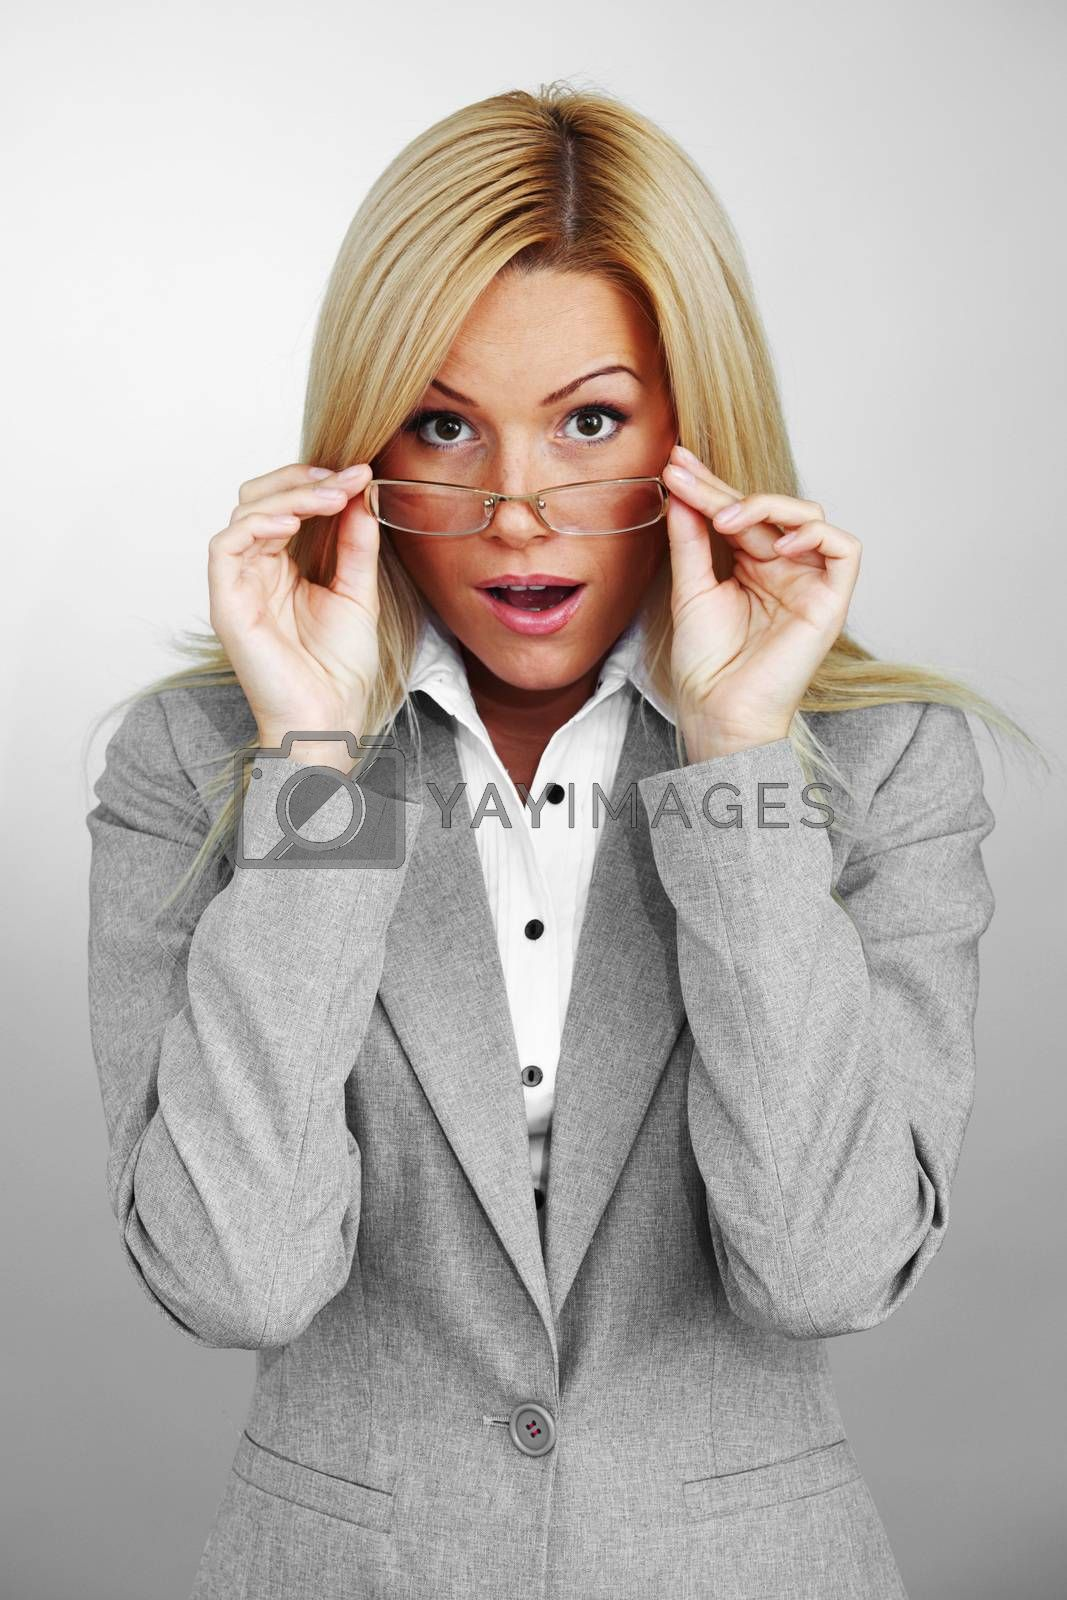 Shocked business woman in glasses by Yellowj